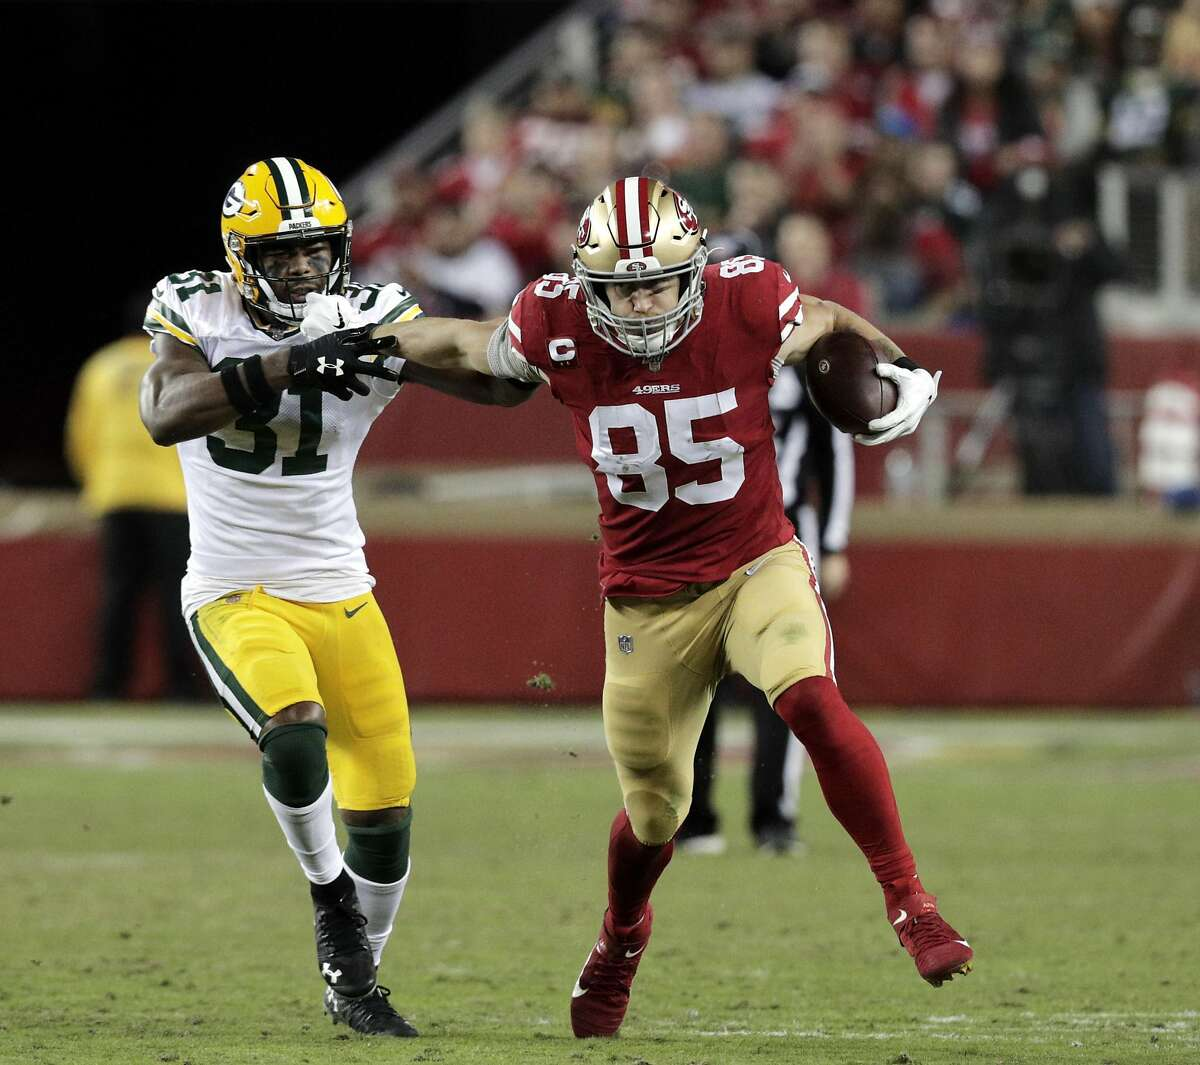 George Kittle (85) runs after a catch in the first half as the San Francisco 49ers played the Green Bay Packers at Levi's Stadium in Santa Clara, Calif., on Sunday, November 11/24/19, 2019.